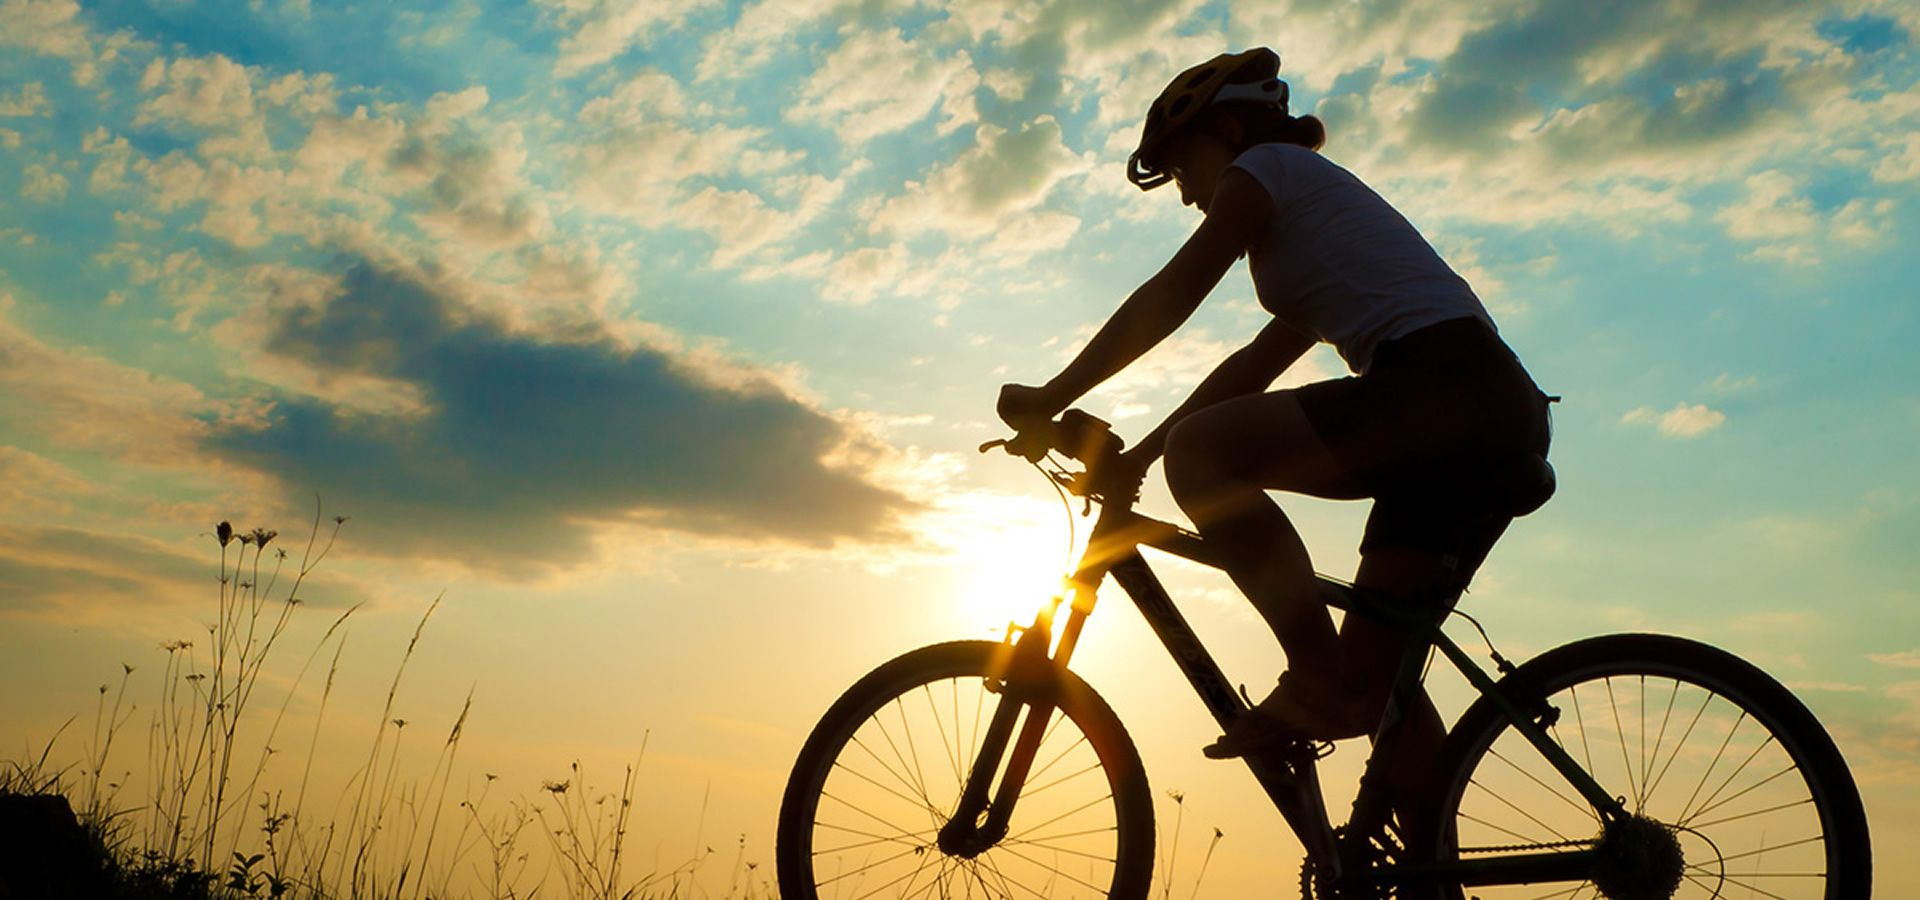 Image result for cycling in nature